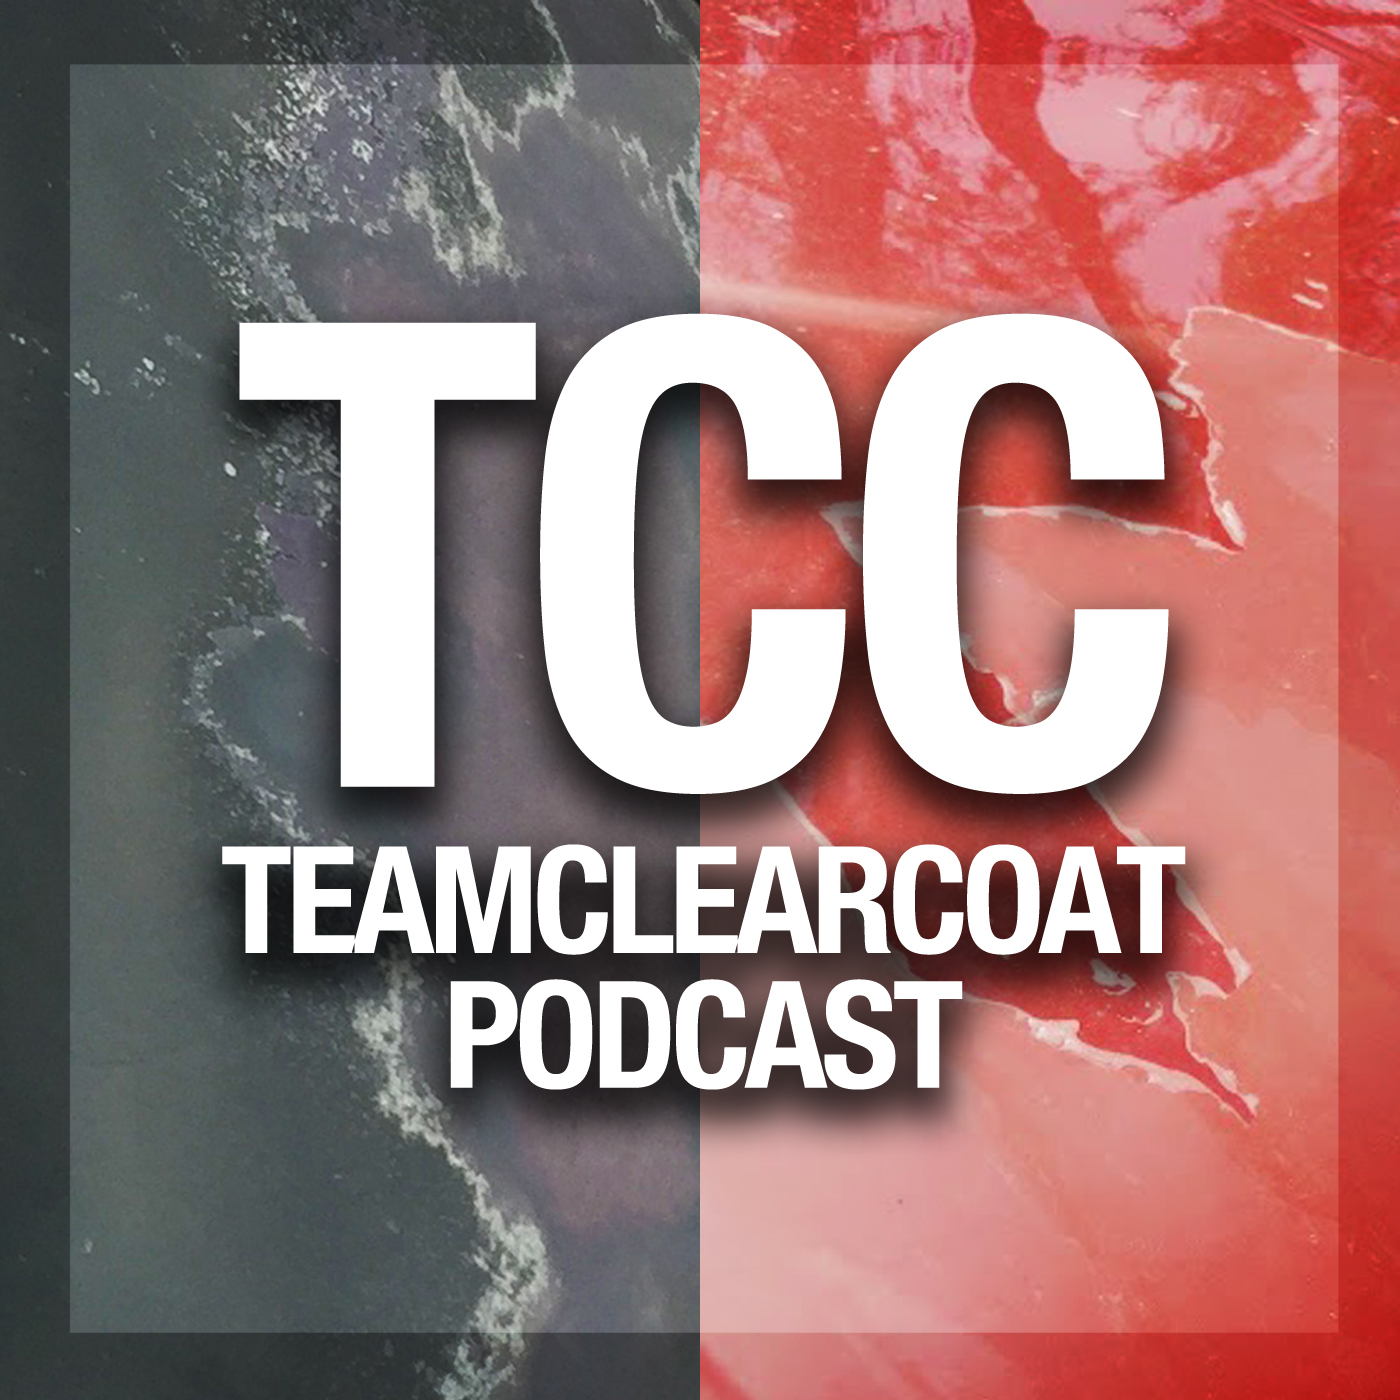 TeamClearCoat